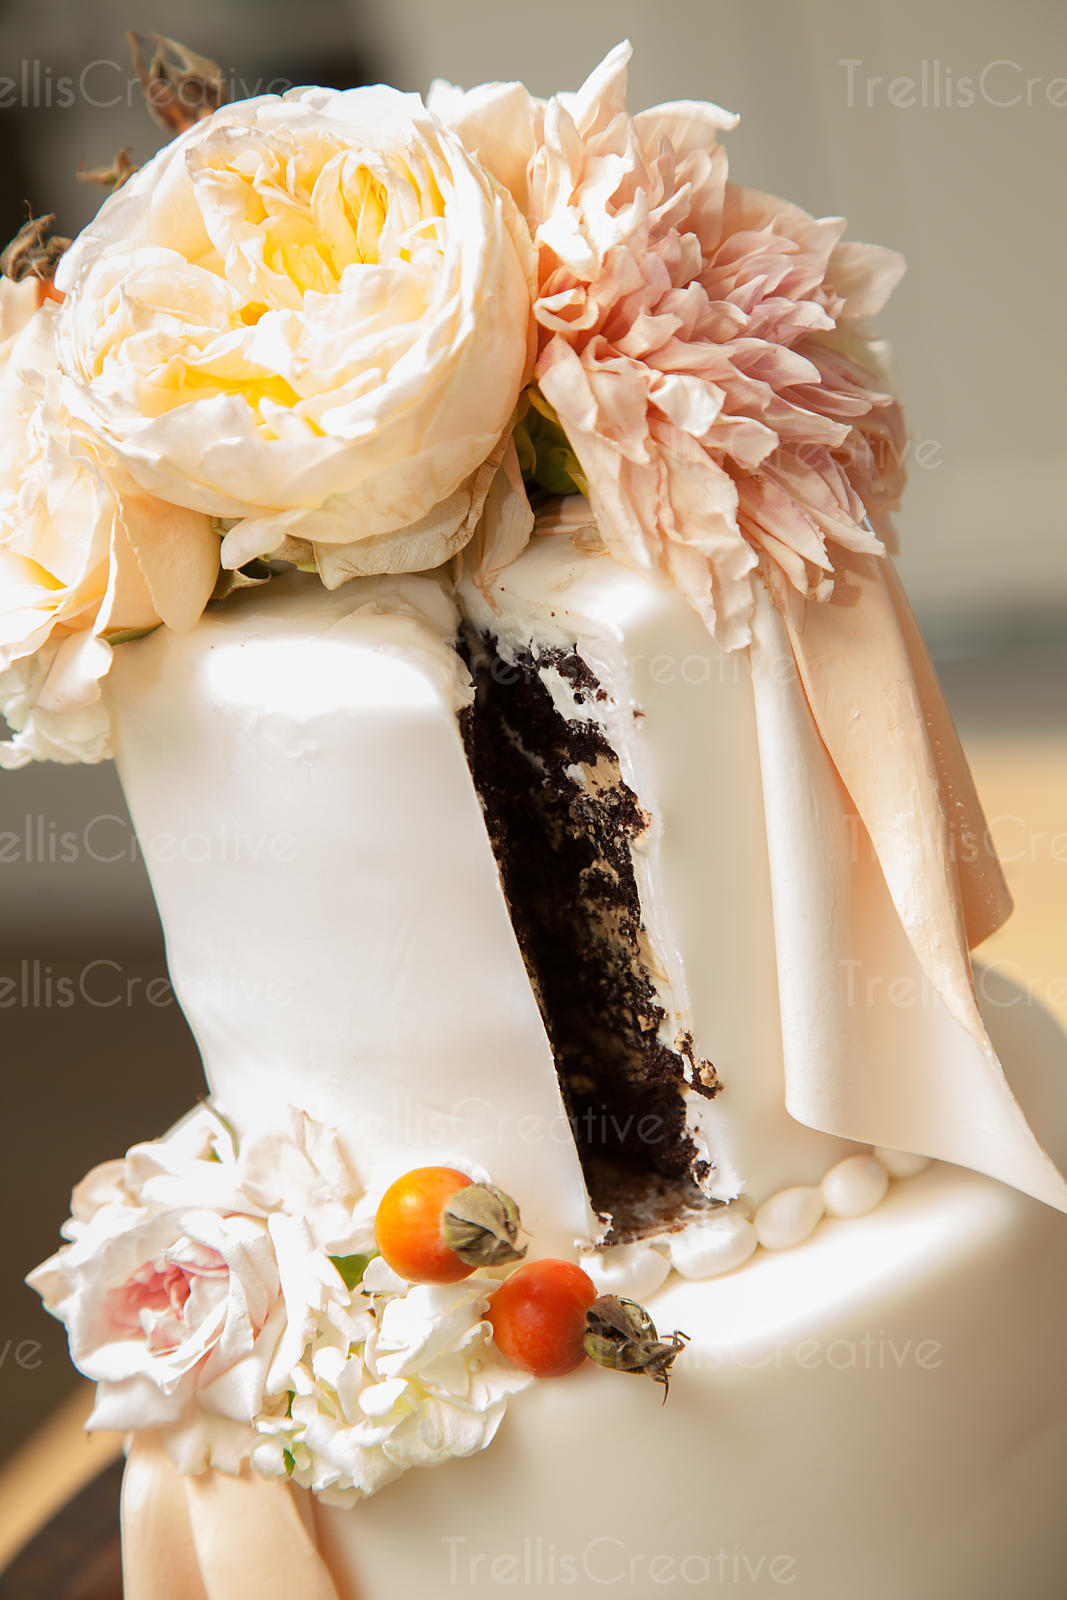 Close up of the wedding cake with delicate white and blush flowers decorations